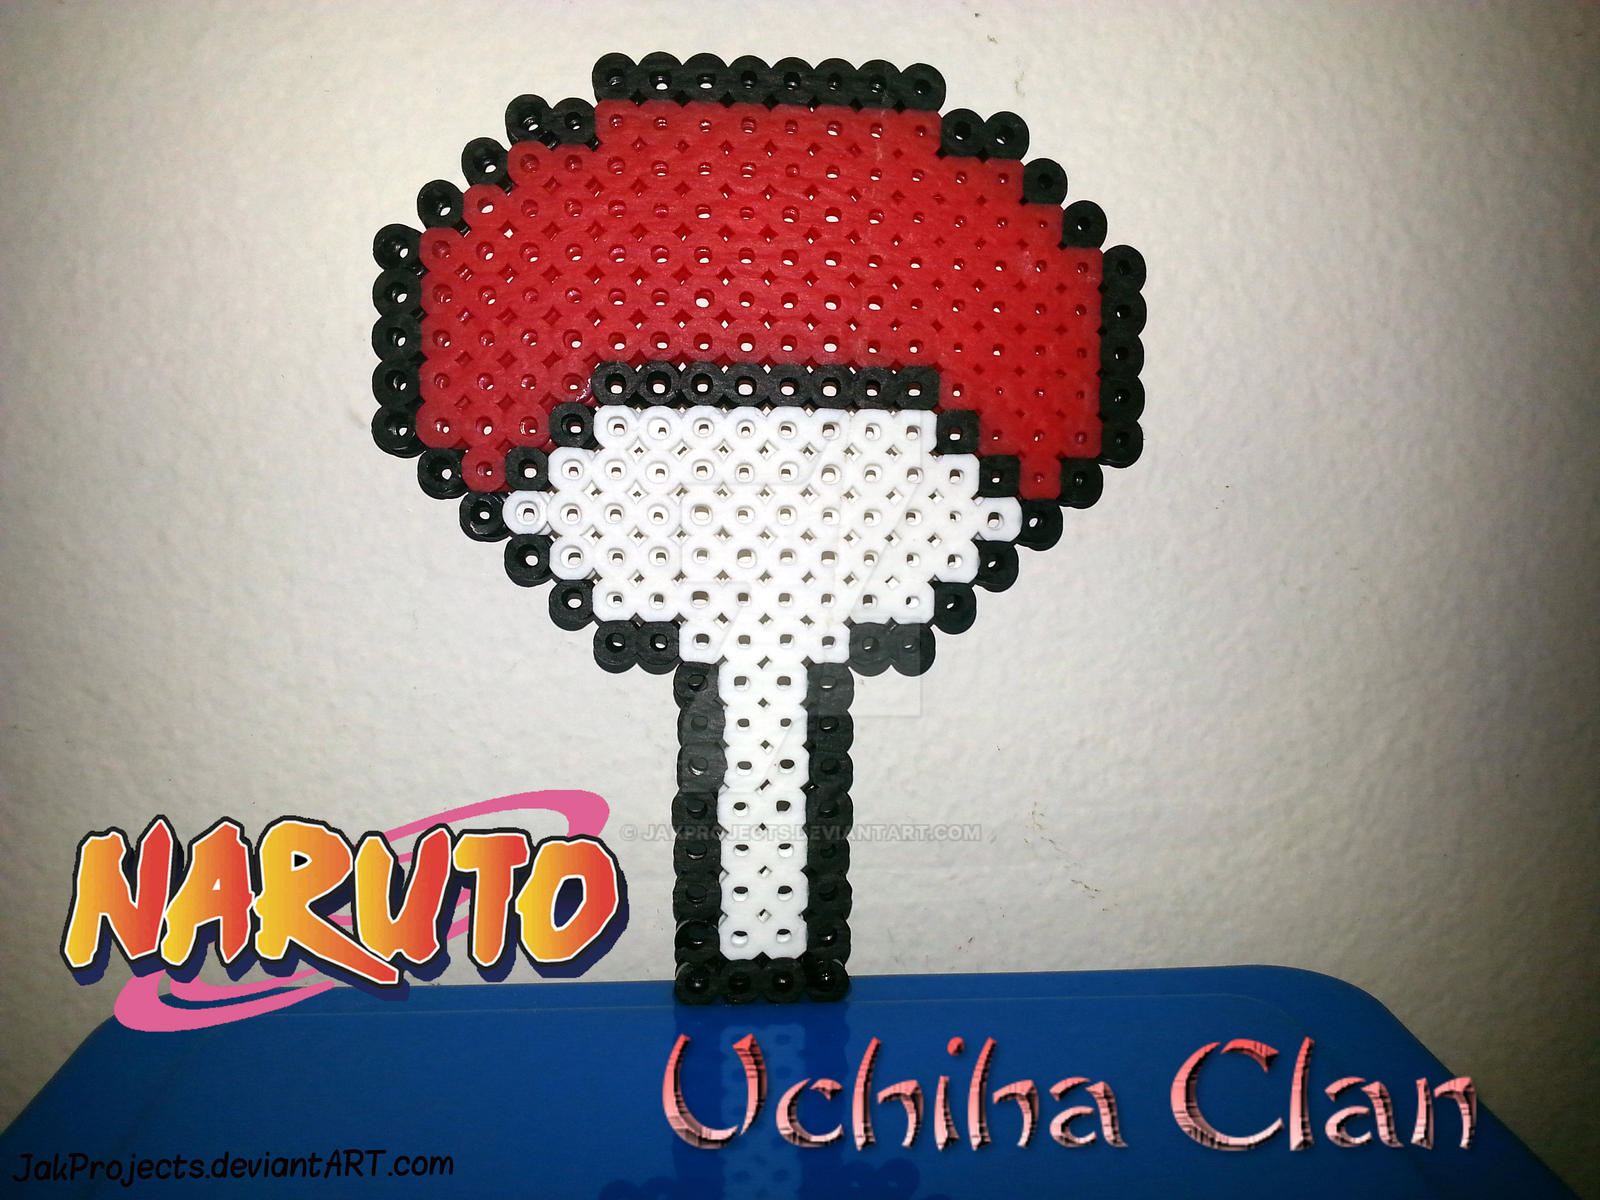 Uchiha Clan Symbol by JakProjects on DeviantArt